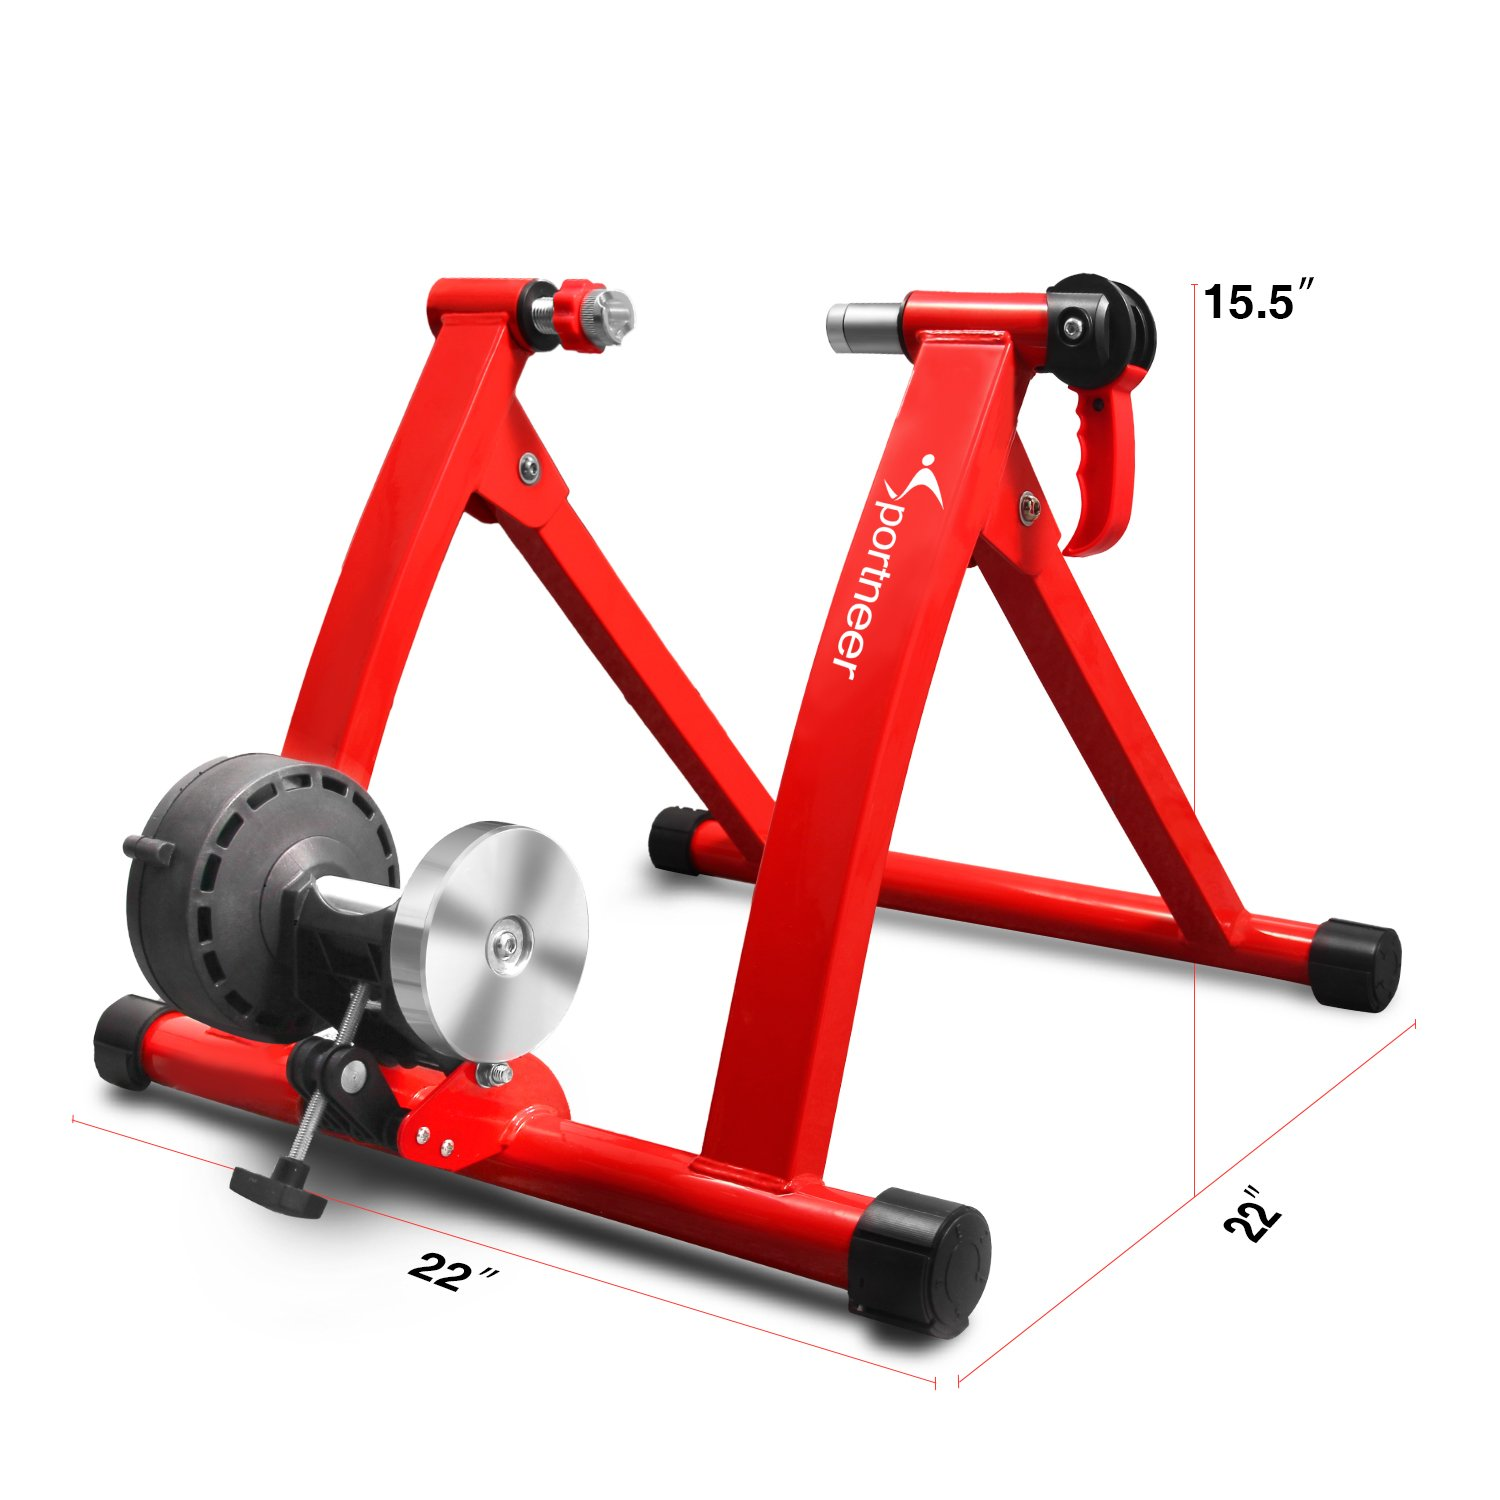 Sportneer Bike Trainer Stand Steel Bicycle Exercise Magnetic Stand with Noise Reduction Wheel, Red by Sportneer (Image #8)